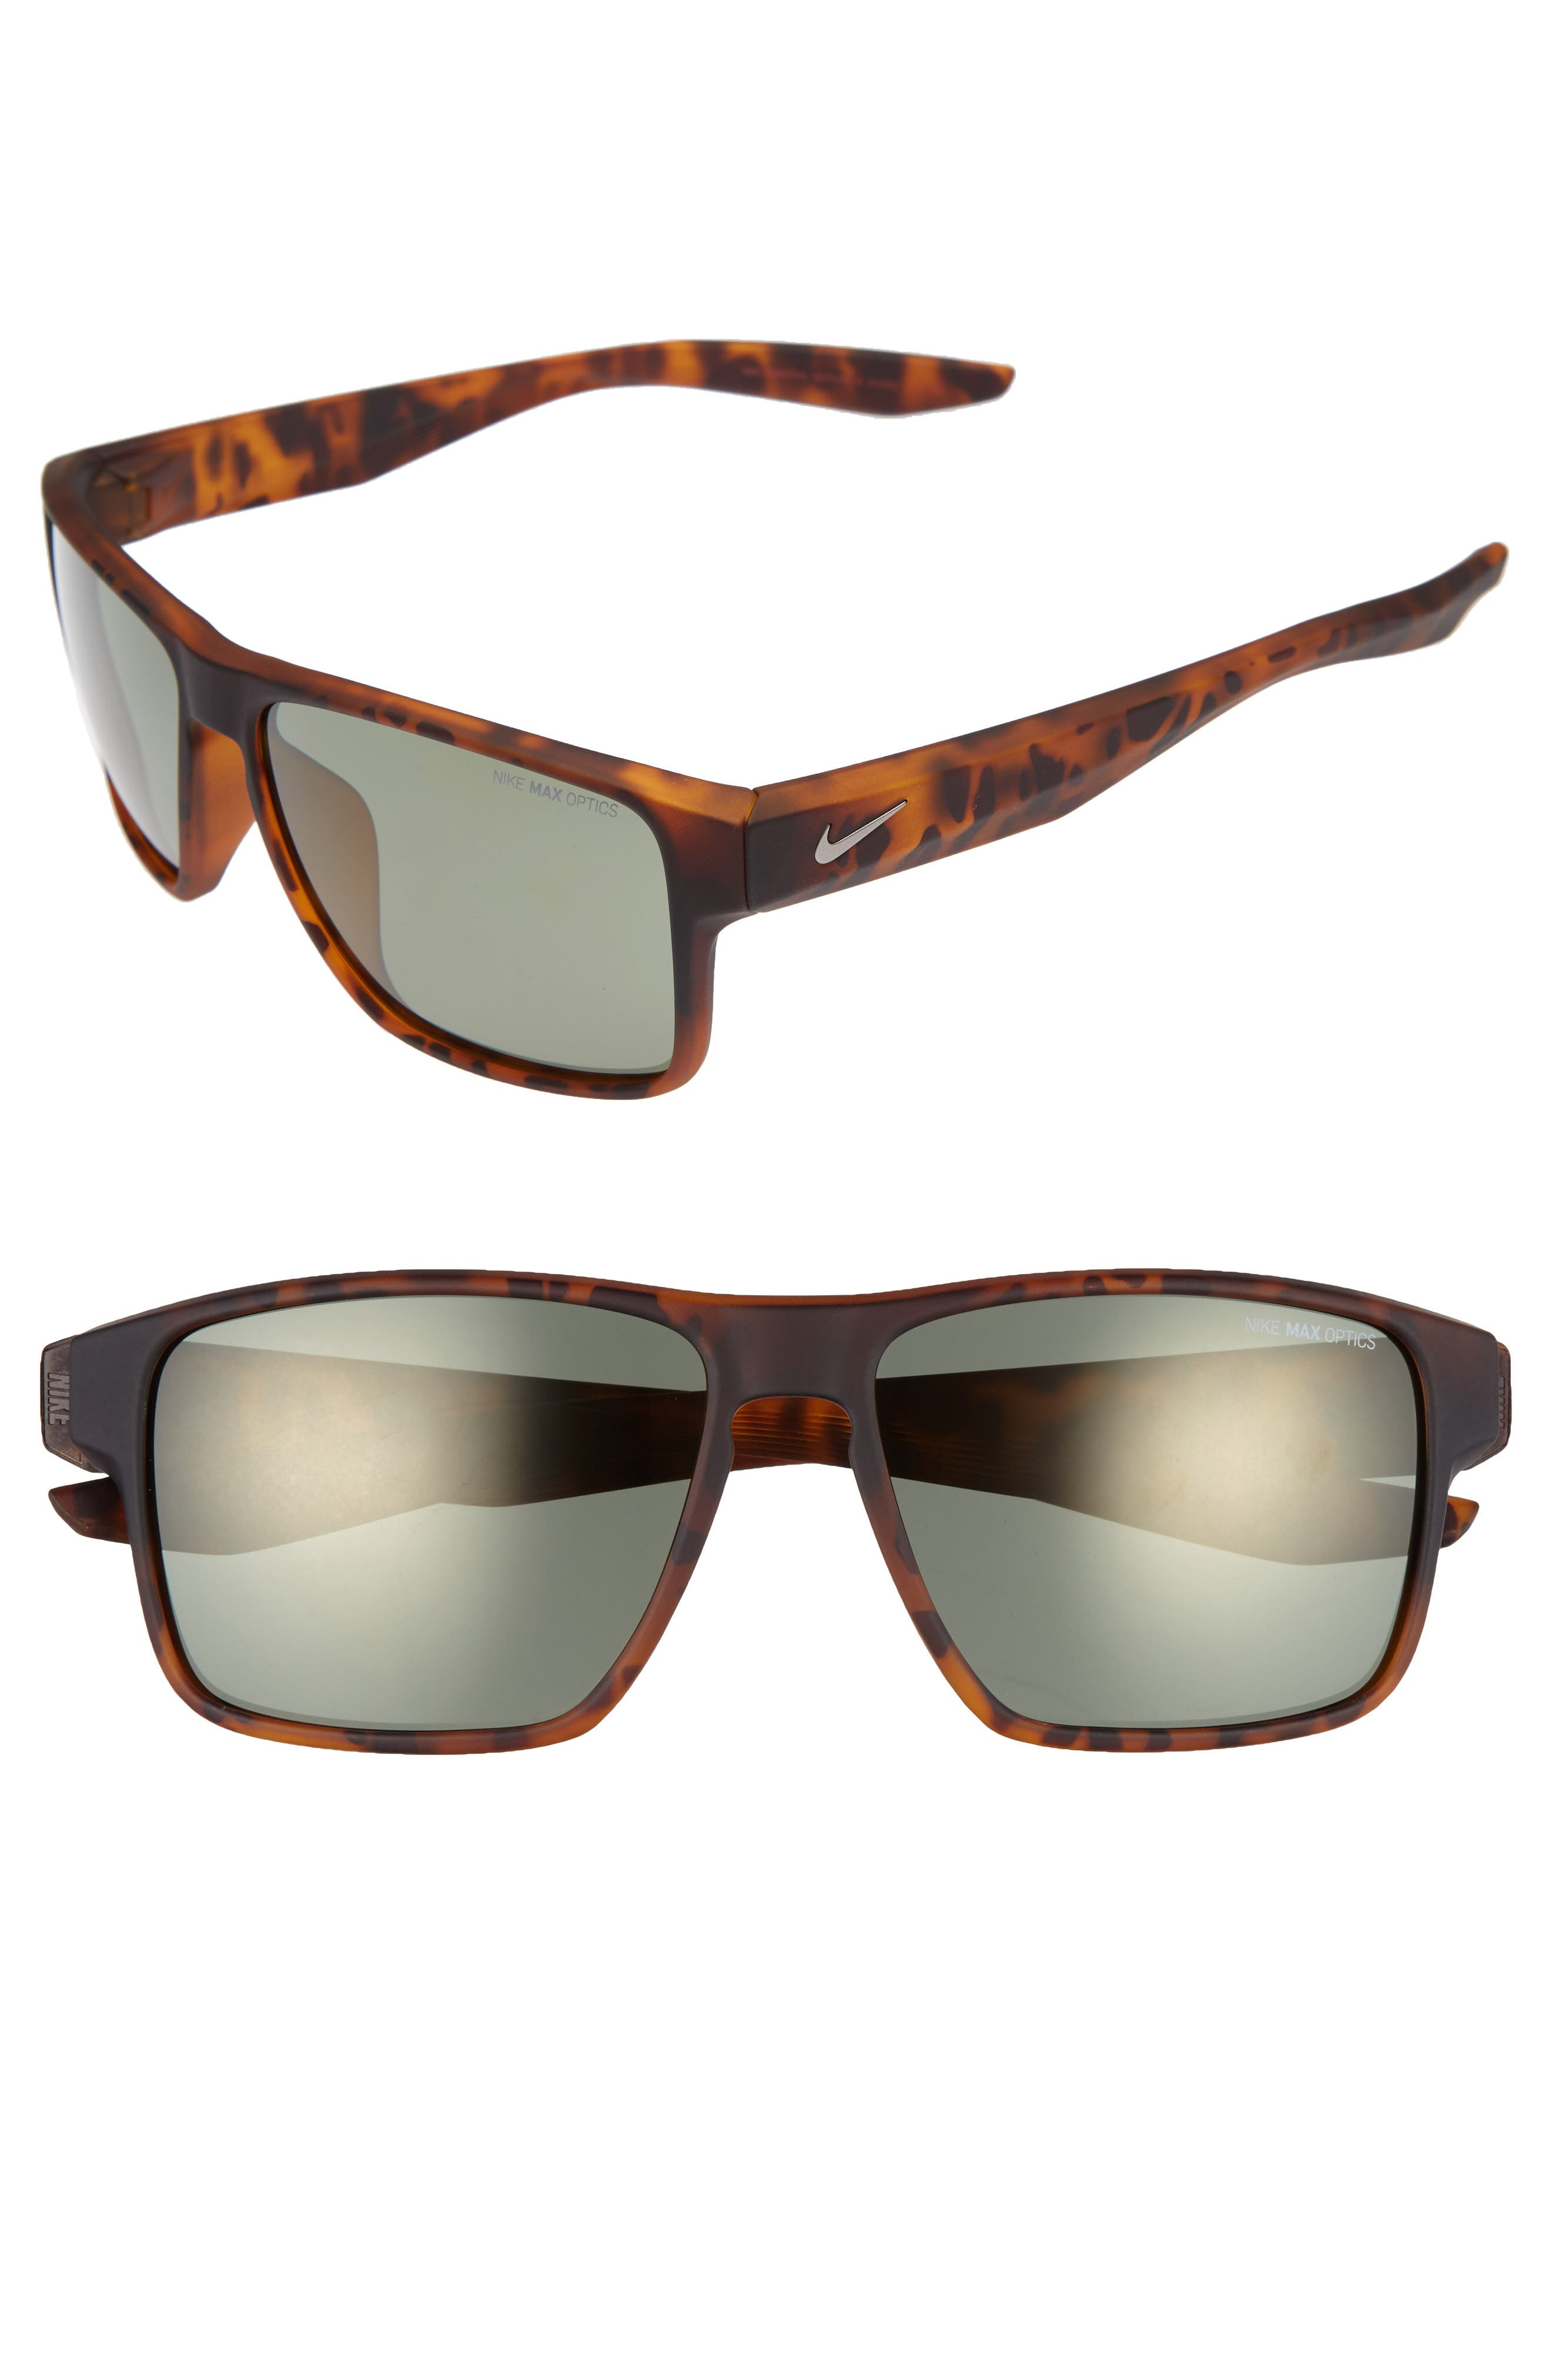 Essential Venture R 59mm Sunglasses,                             Main thumbnail 1, color,                             MATTE TORTOISE